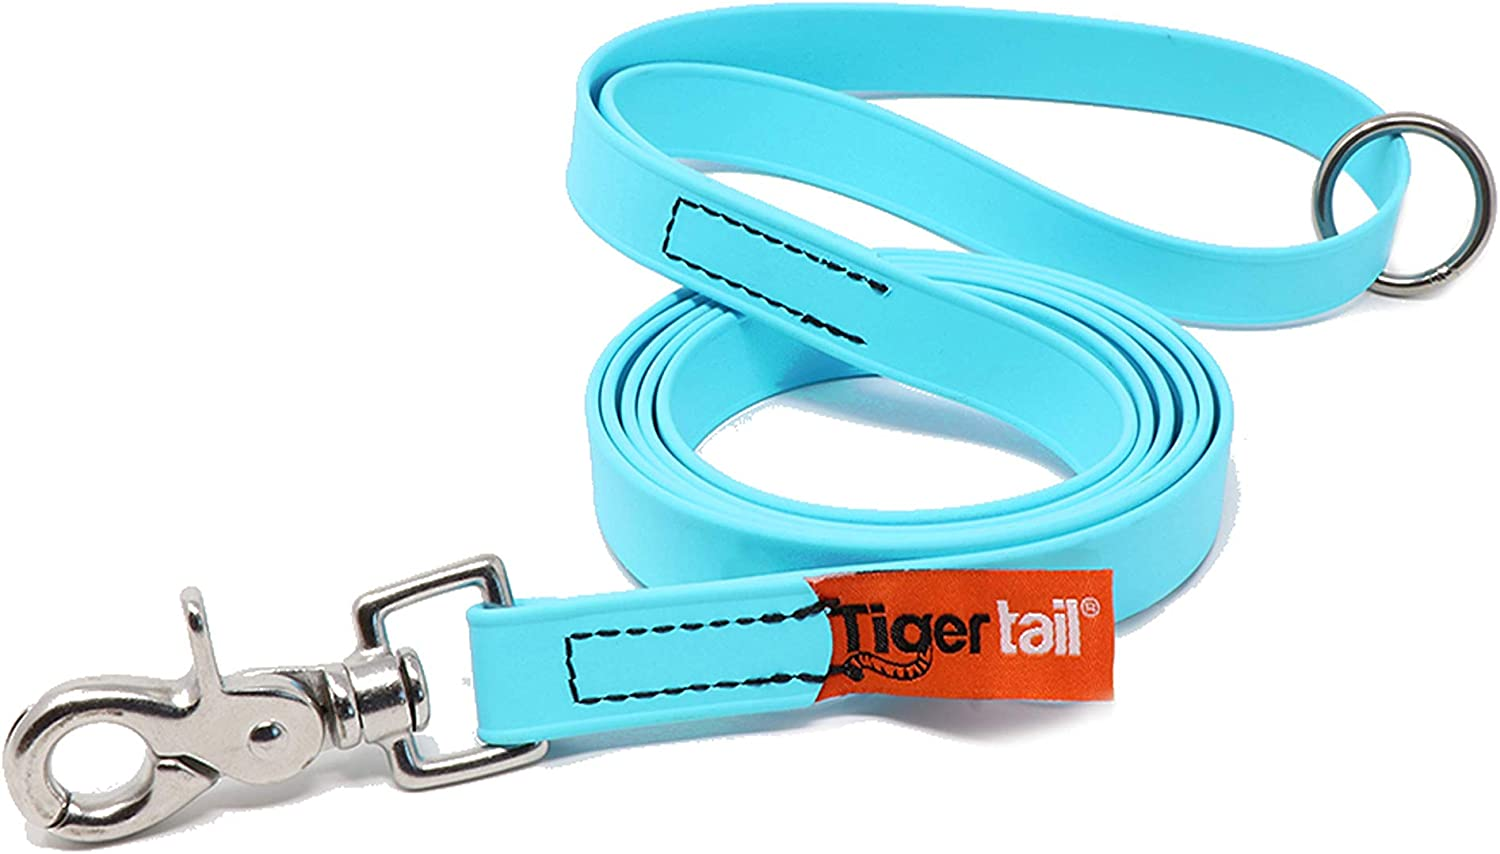 Tiger Tail Urban Arlington Mall Nomad Dog Leash Waterproof - Animer and price revision Lightweight